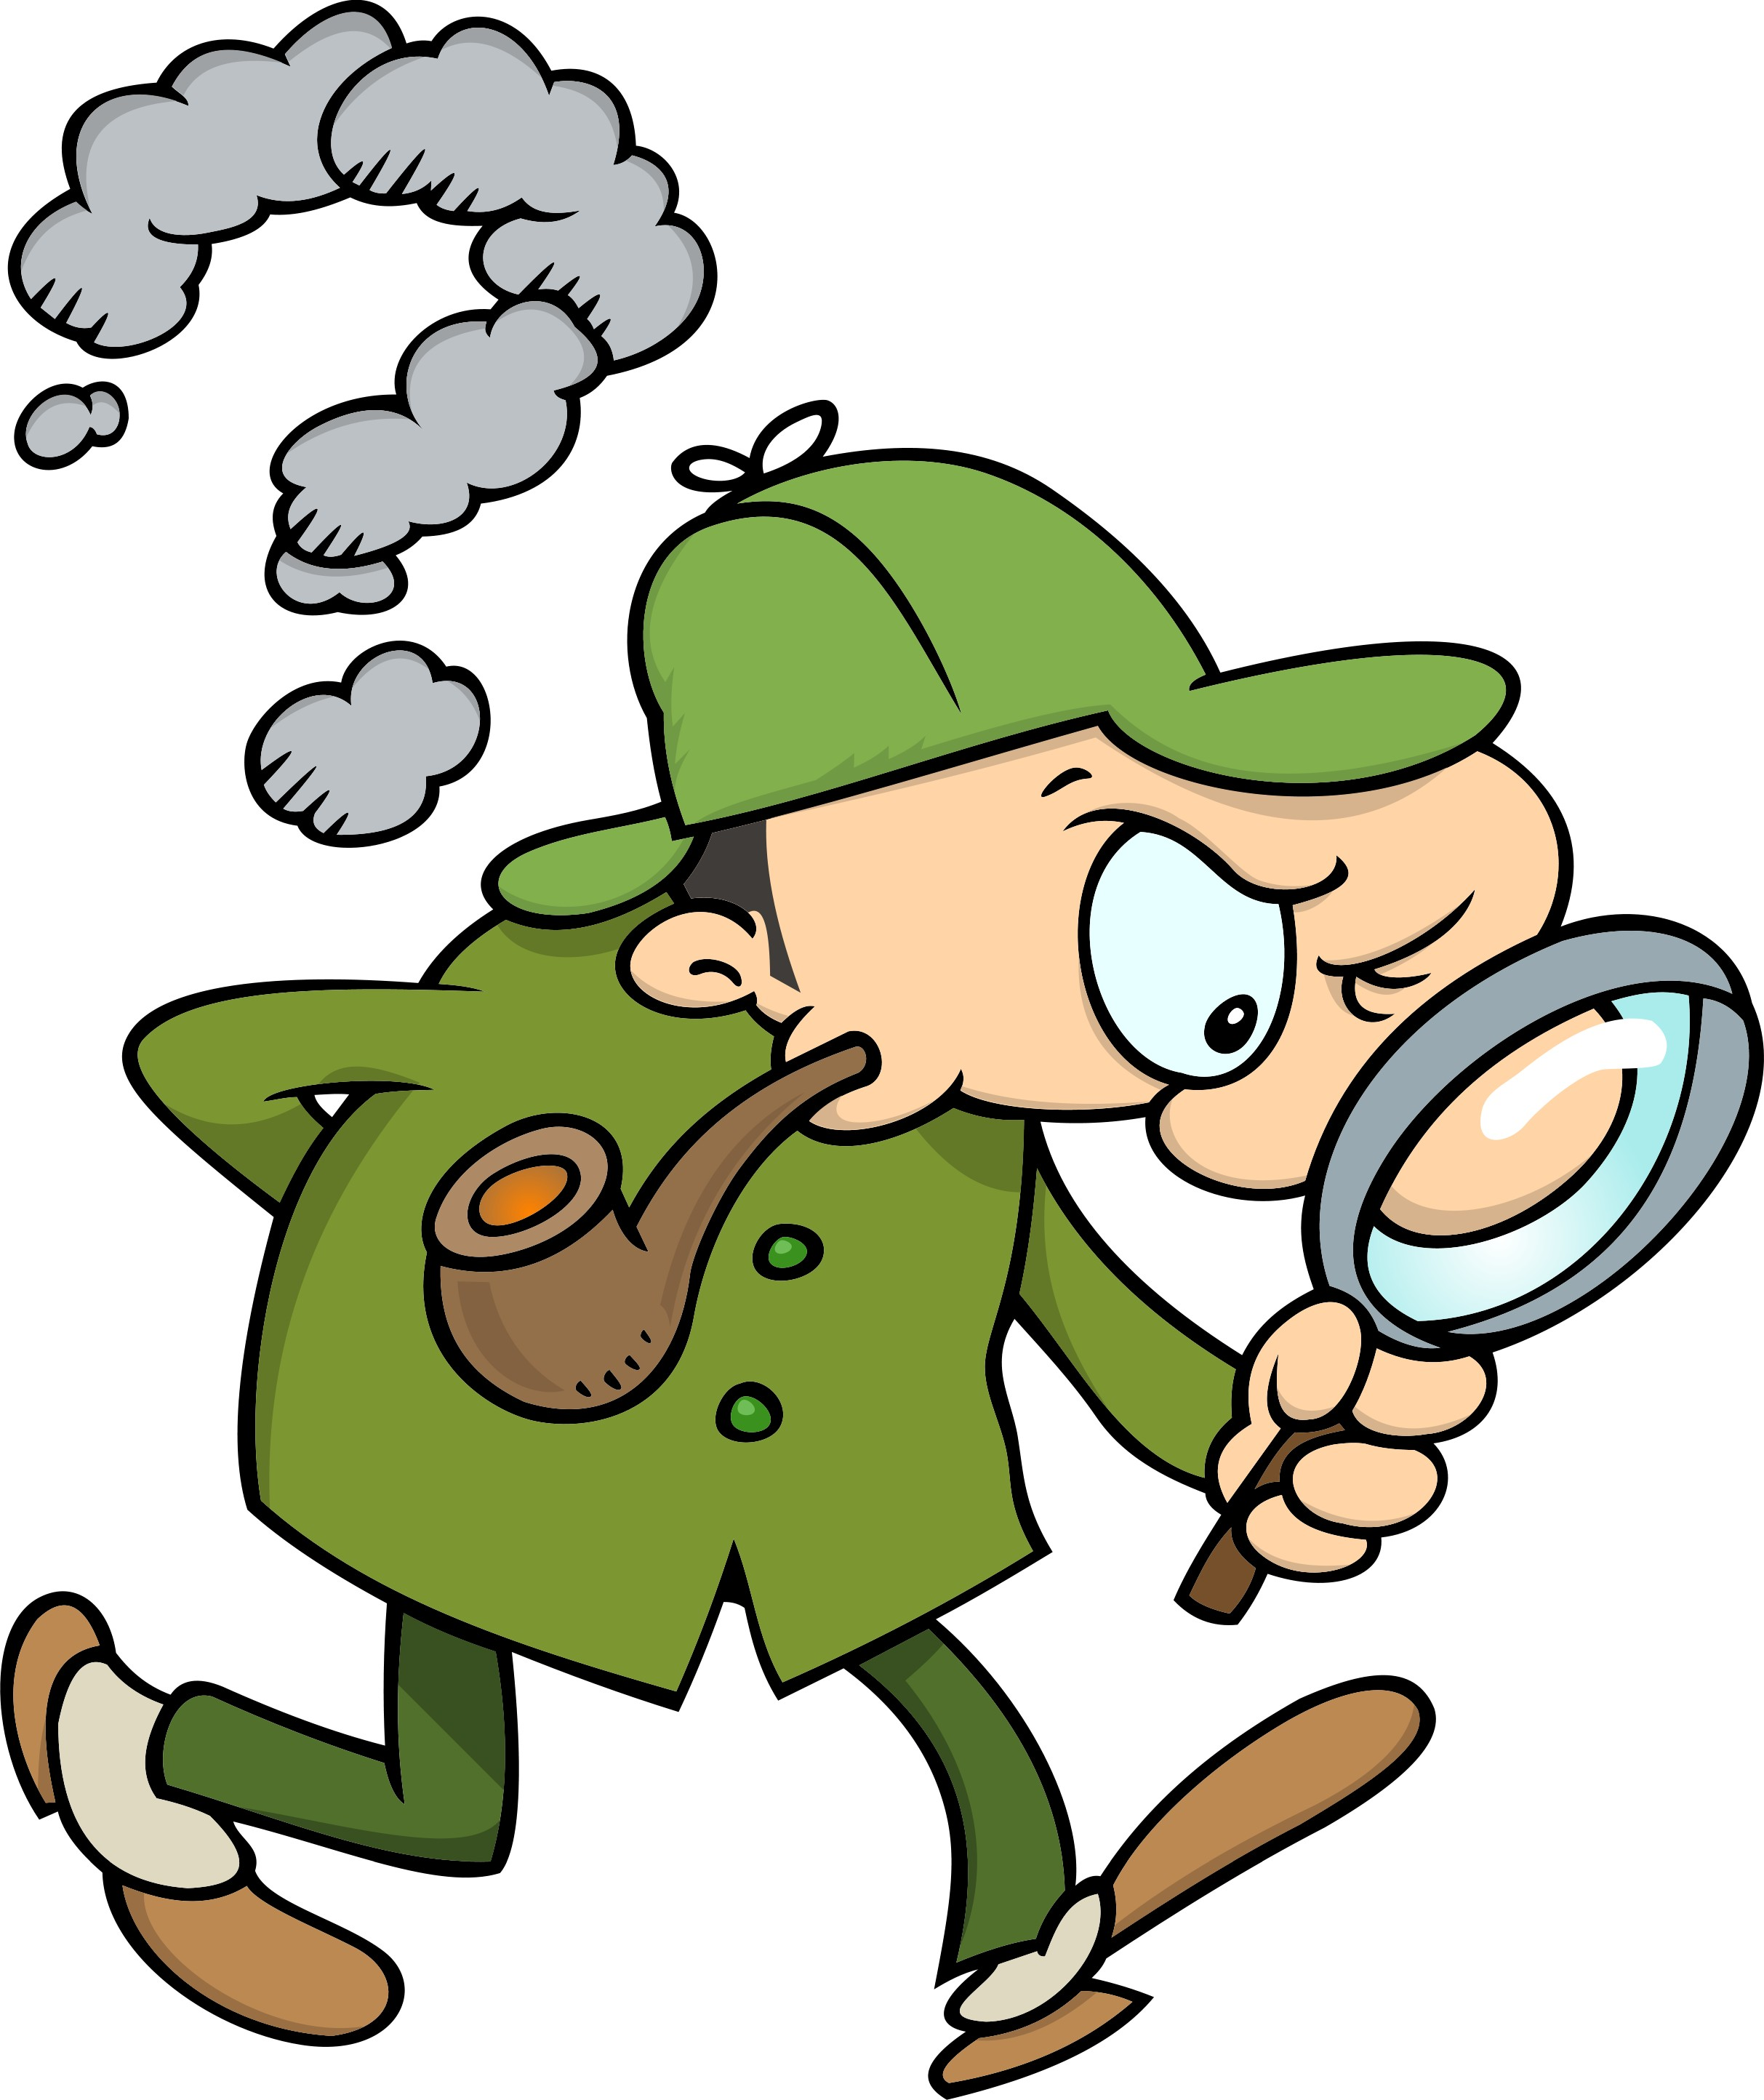 Free i see cliparts. Detective clipart problem solving